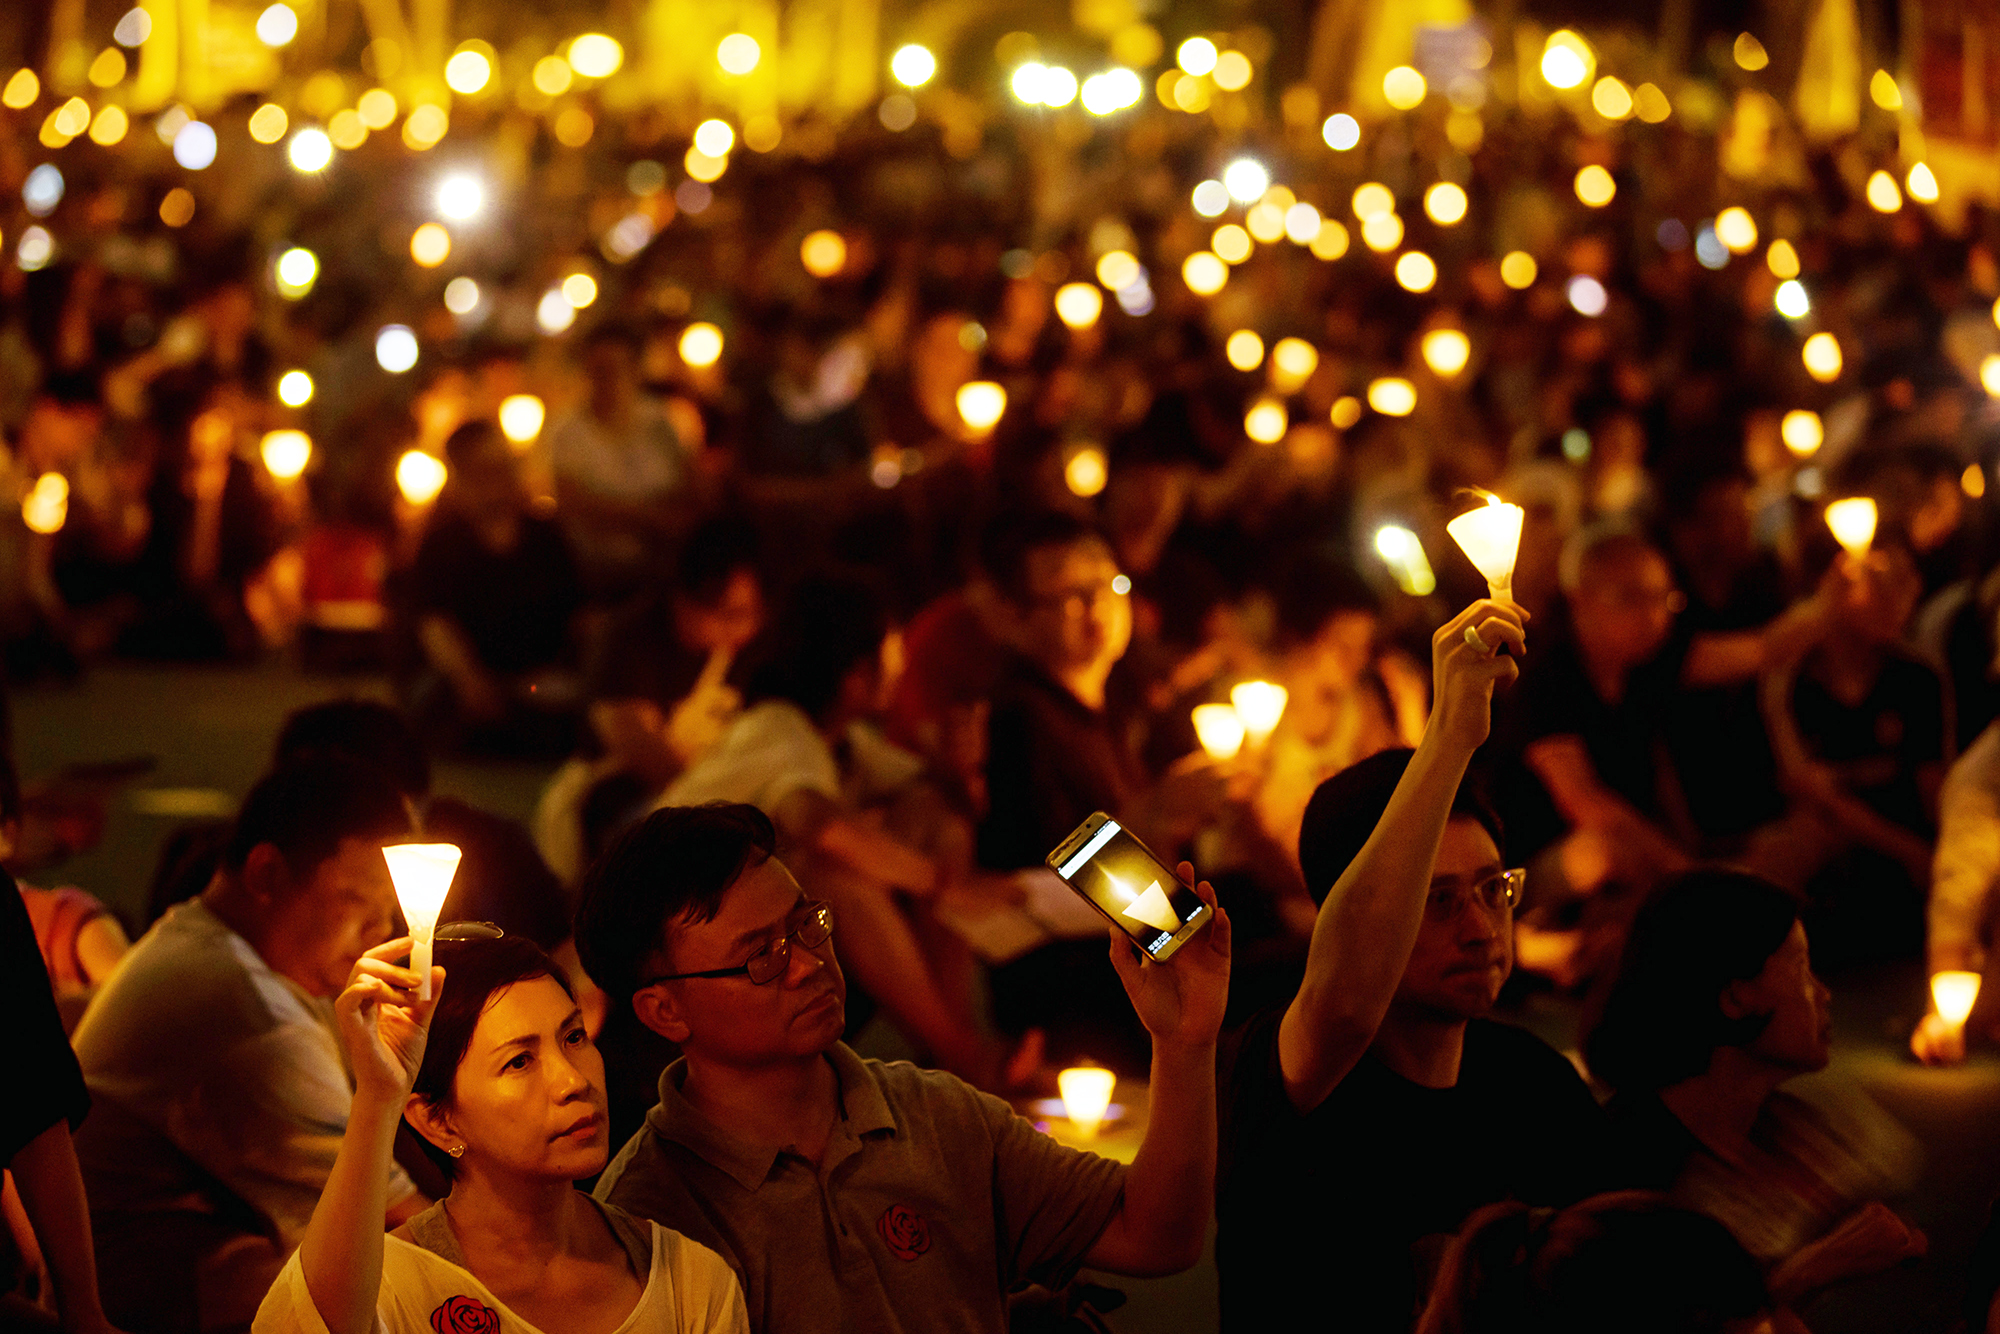 Demonstrators attend a candlelight vigil at Victoria Park in Hong Kong, on June 4, 2017.